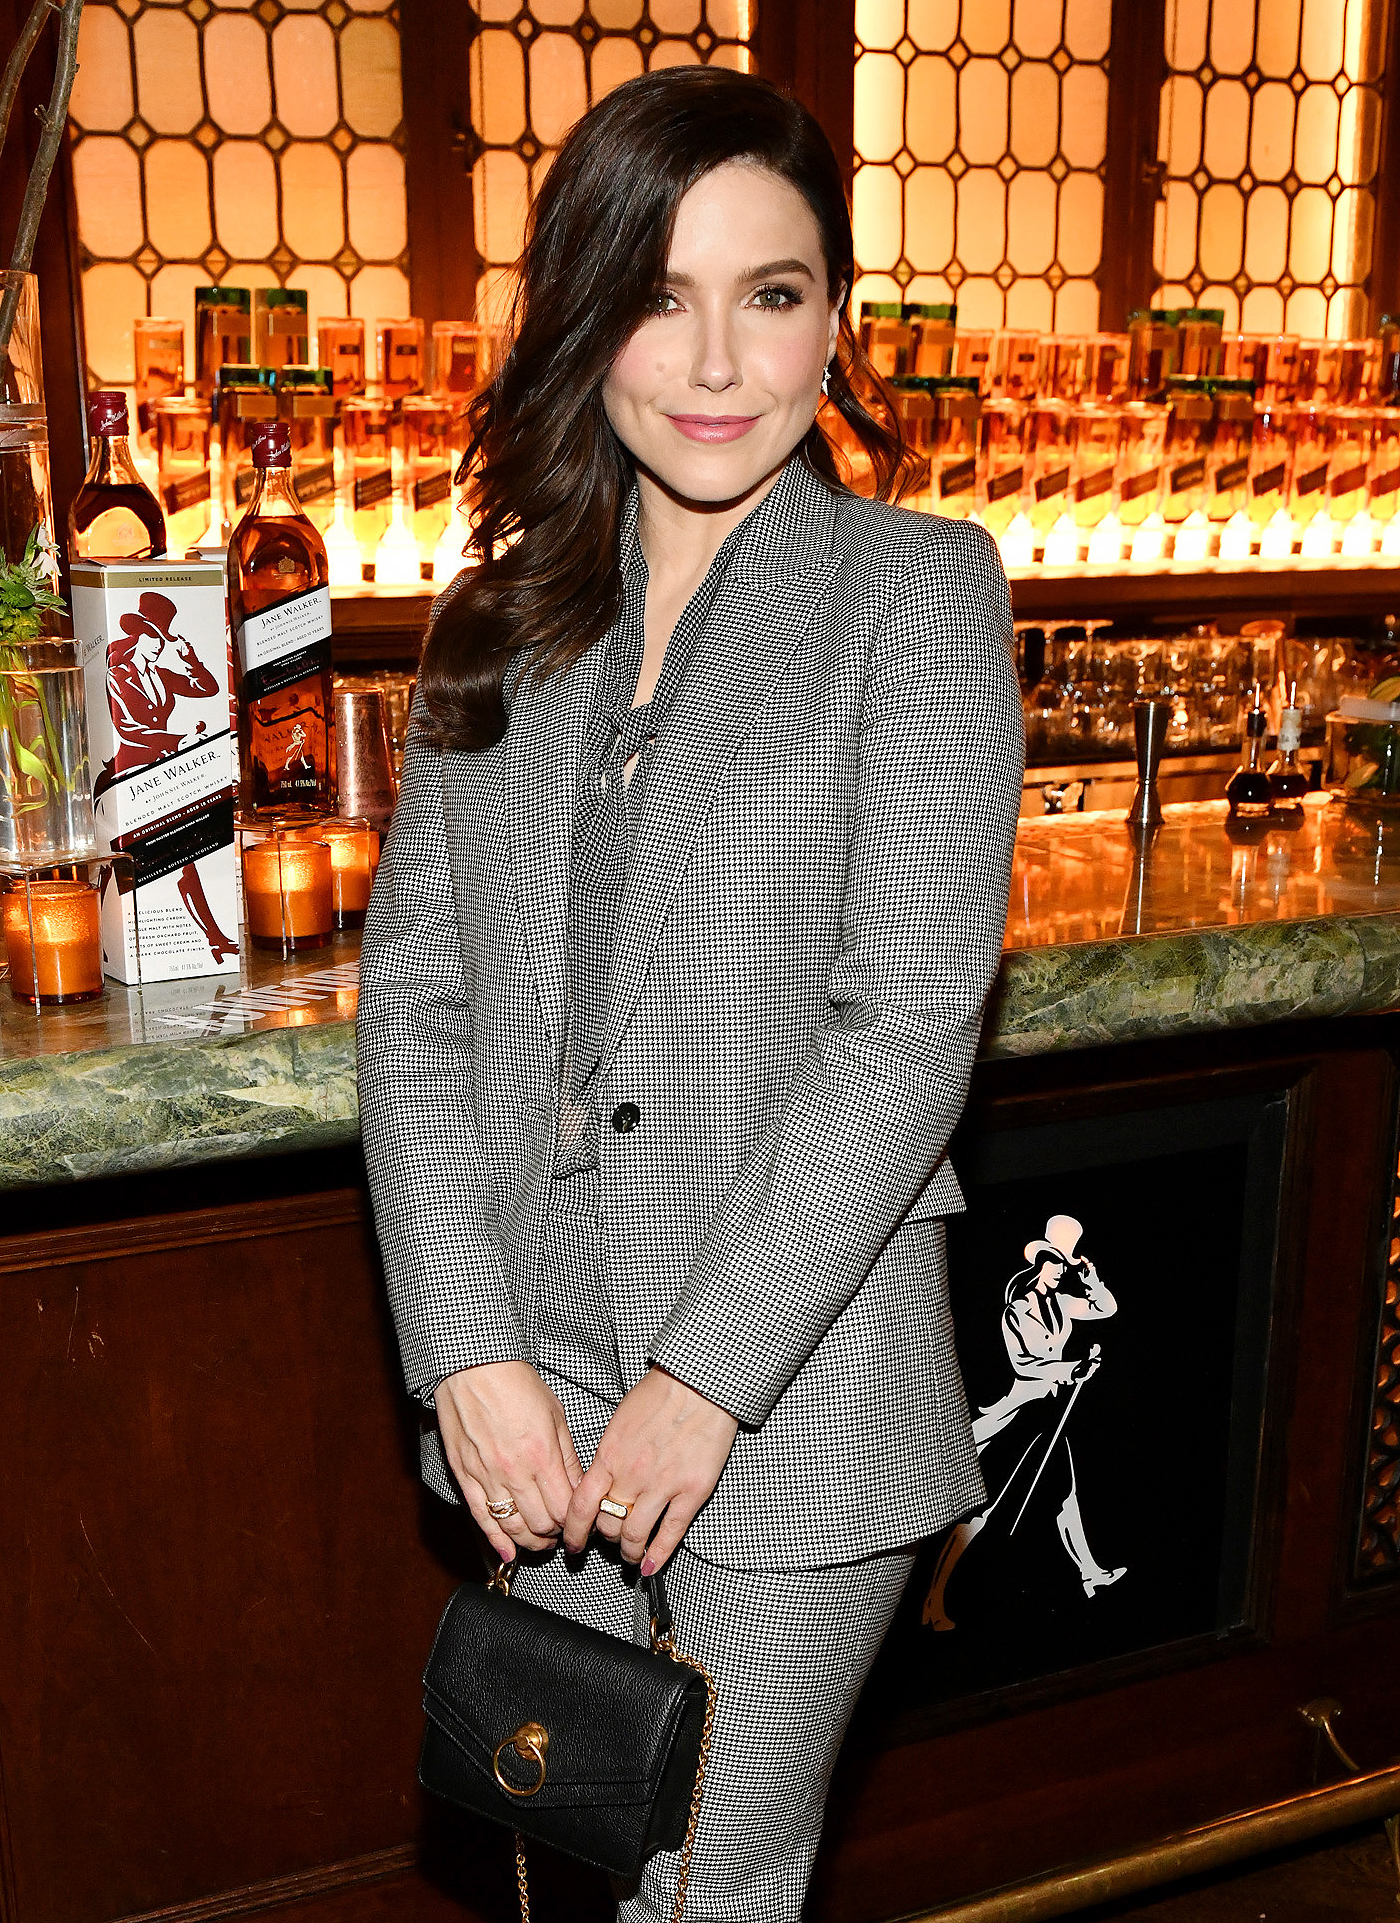 Sophia Bush joins Jane Walker by Johnnie Walker and the ERA Coalition in standing with the Equal Rights Amendment at The Campbell Bar on March 10, 2020 in New York City.